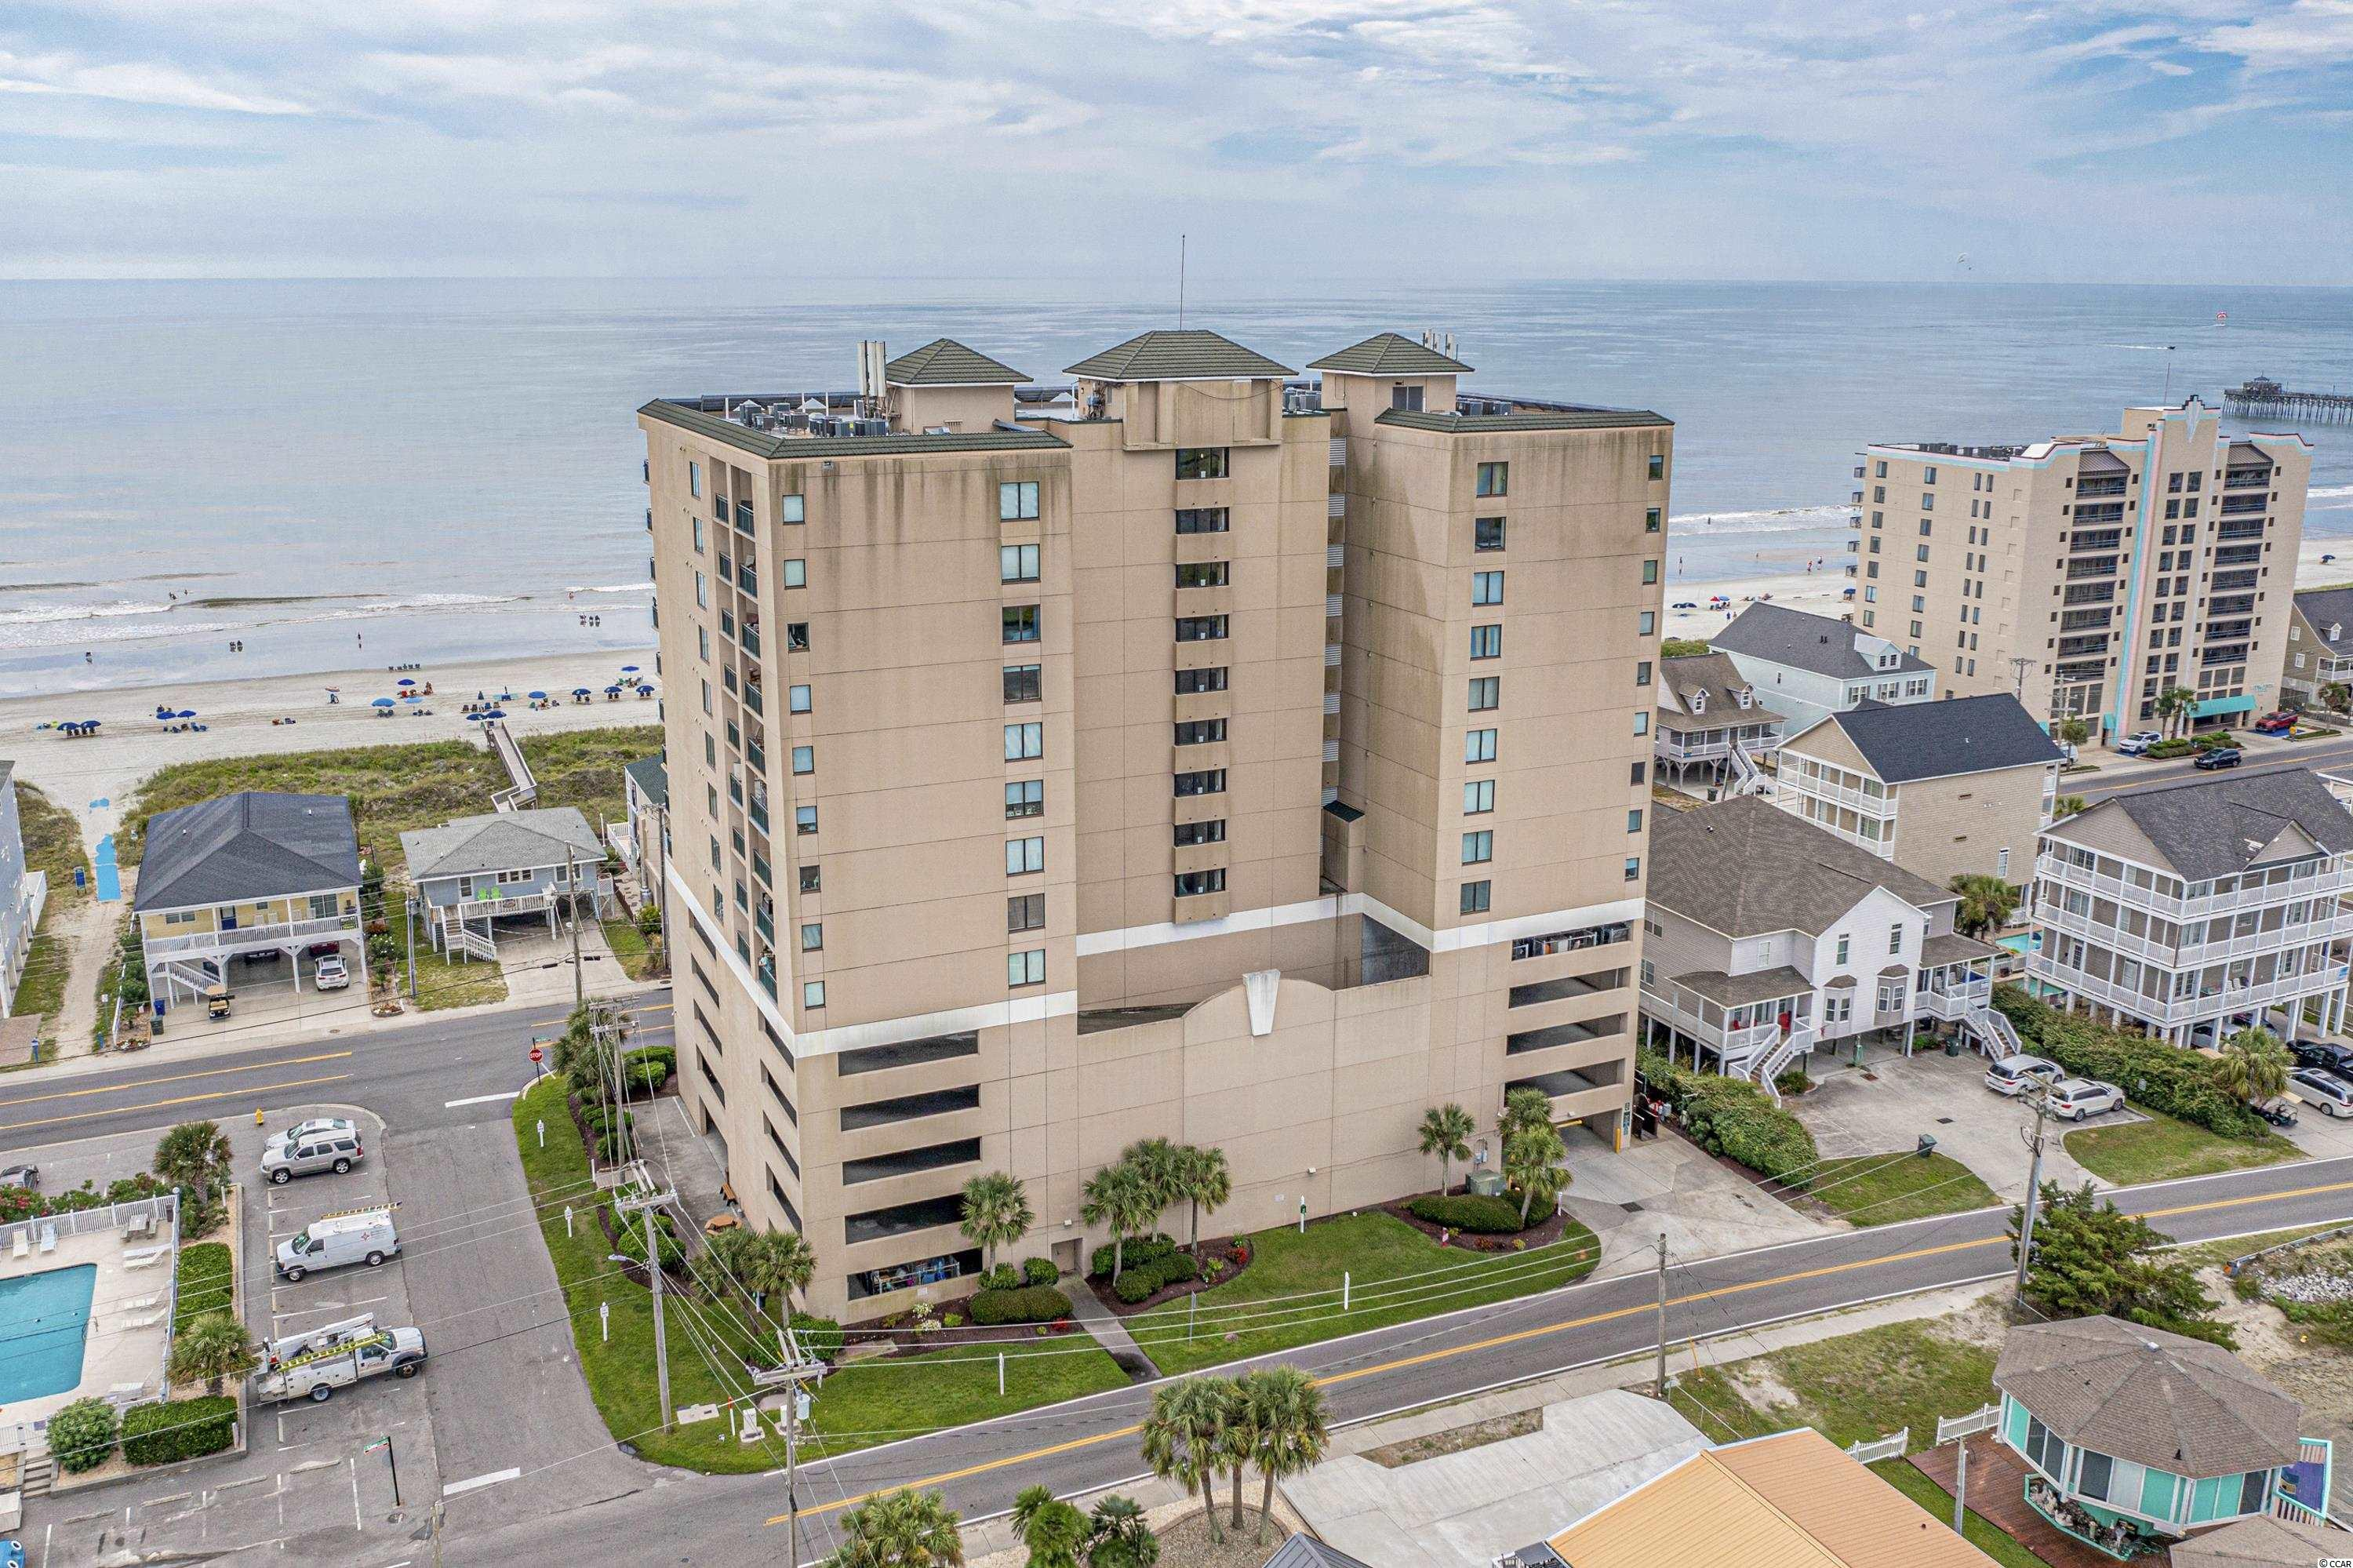 Check out the beautiful marsh and ocean views in this two bedroom, two bathroom condo in Beachwalk Villas! This spacious end unit has a full wall of windows and sliders with incredible views. This fully furnished unit has been well taken care of and waiting for you! No need to worry about parking with 5 levels of parking deck below the building. Beachwalk Villas features their oceanfront amenity center with indoor/outdoor pools, exercise room, game room and private owners floor. Don't miss out on everything this beautiful Beachwalk Villas unit has to offer!